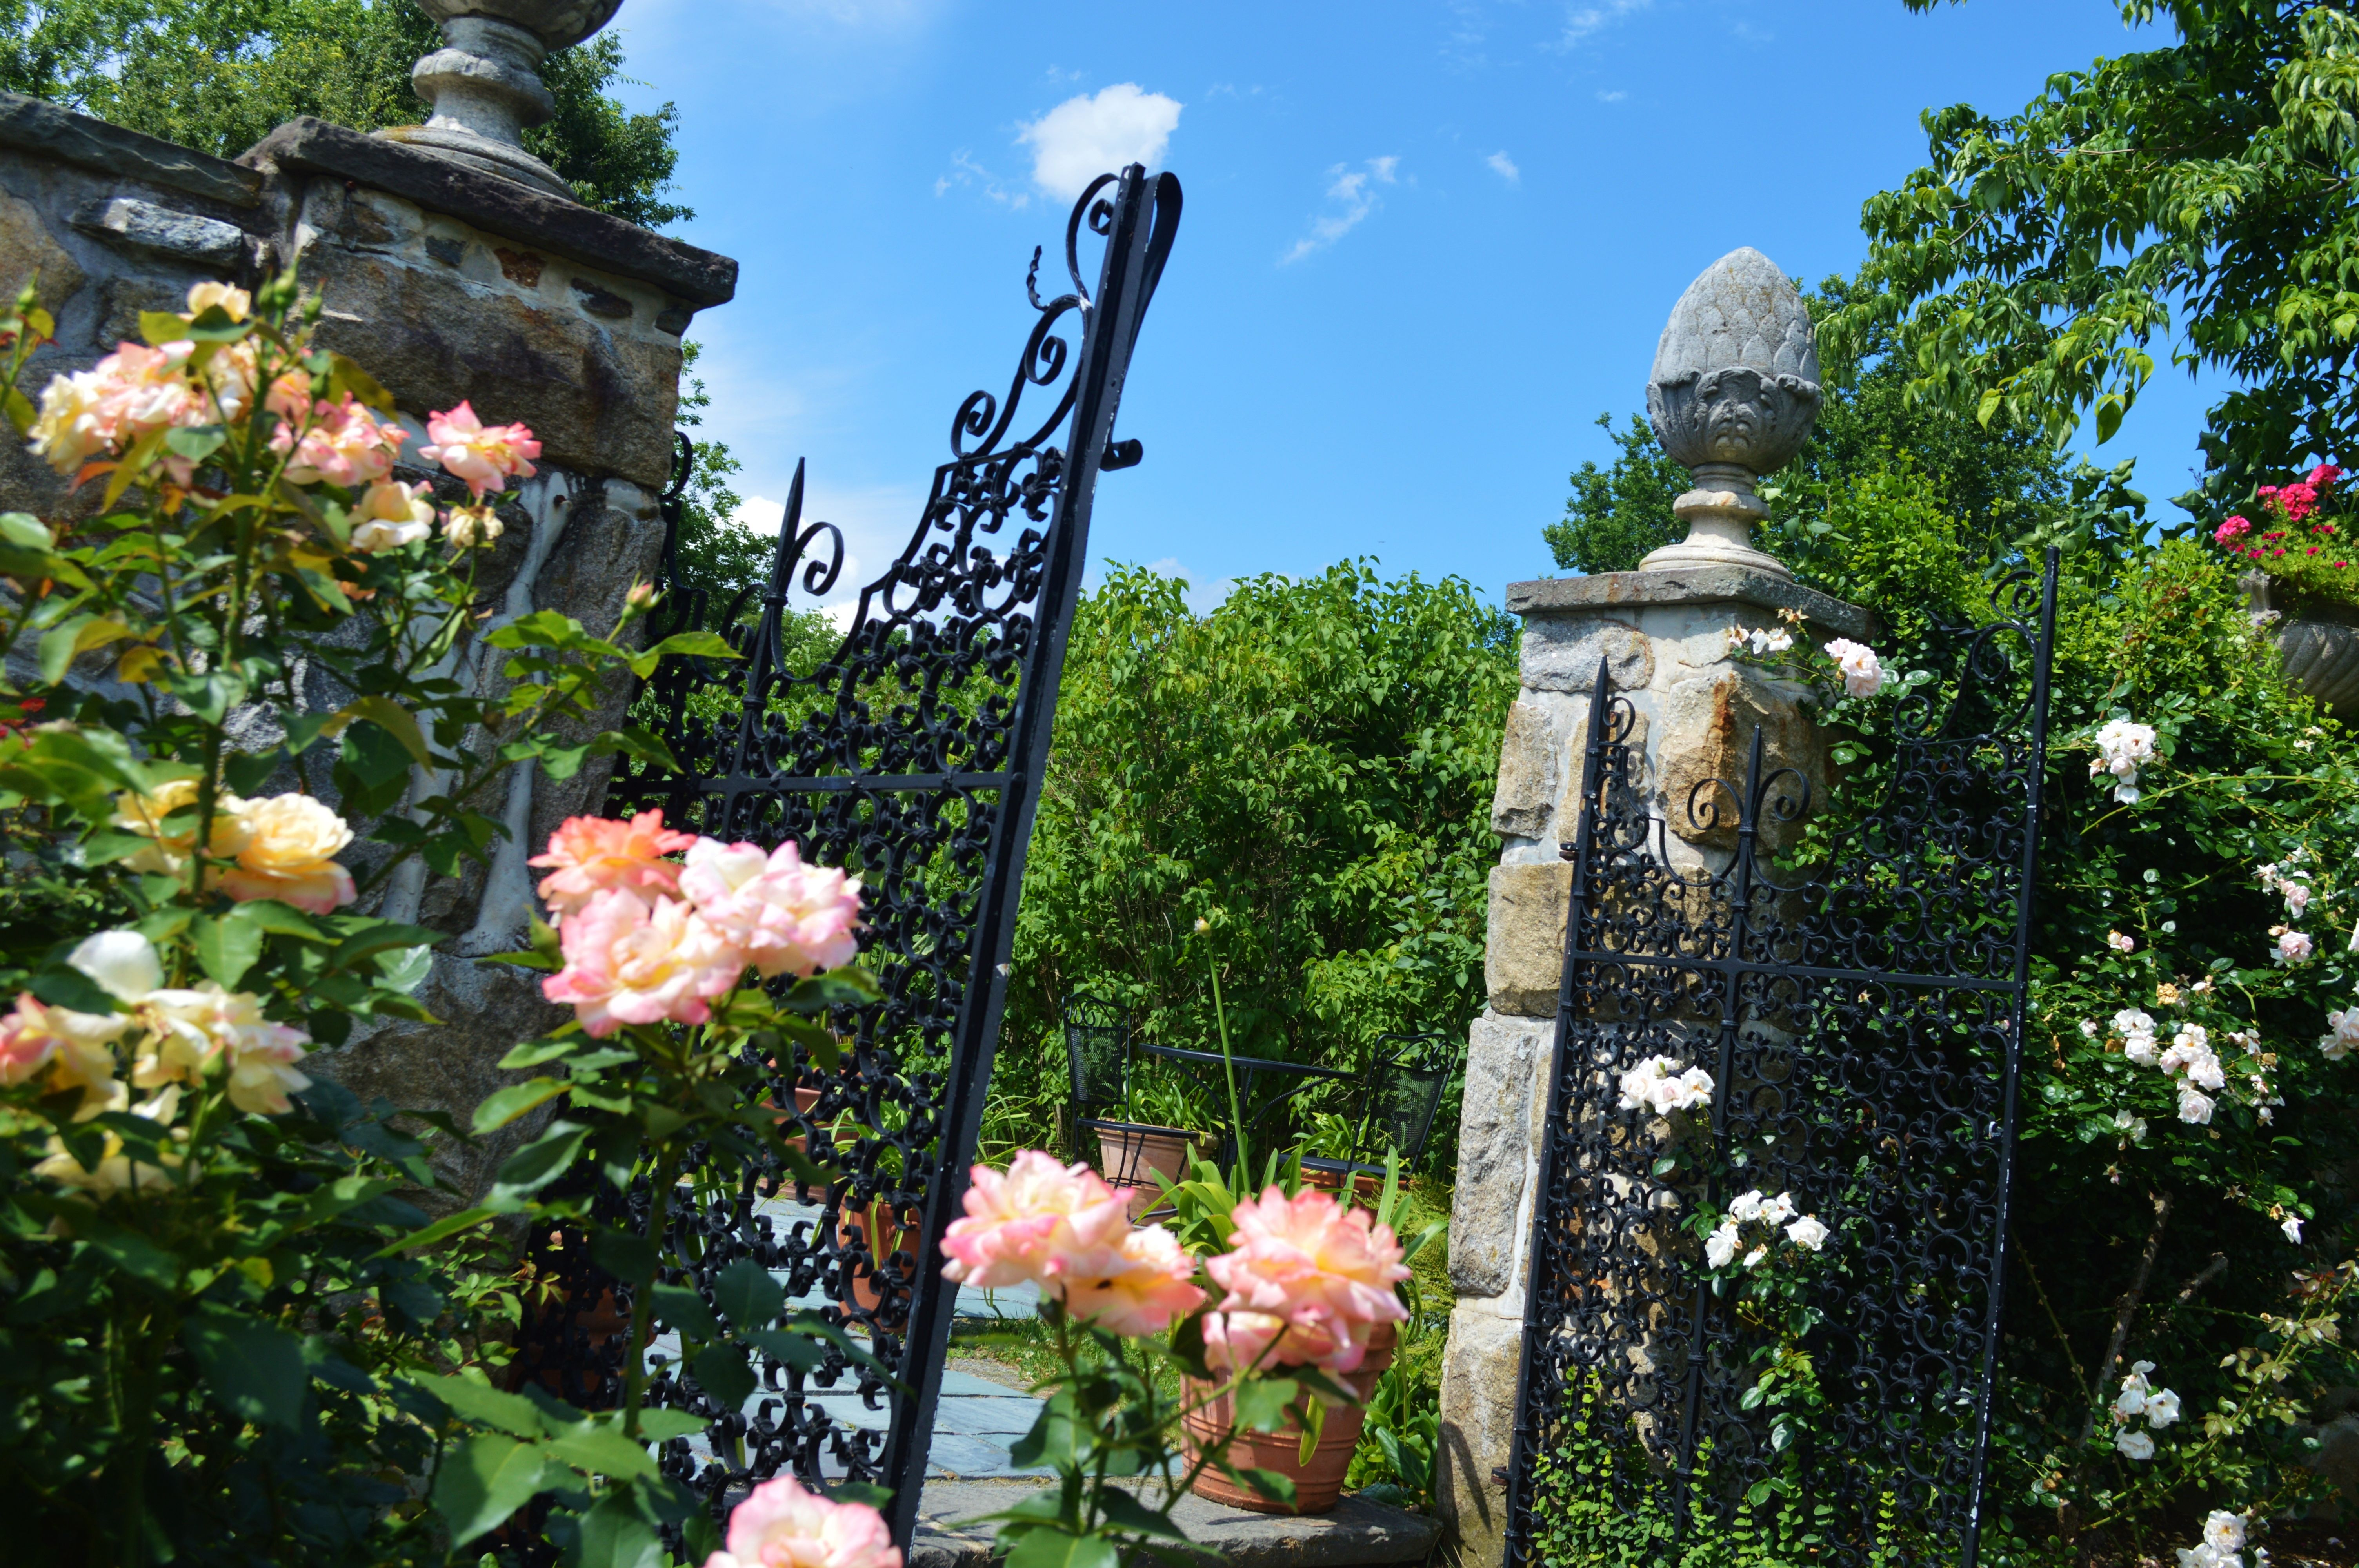 Flowers at the Stevens-Coolidge Place (North Andover, MA). A ...